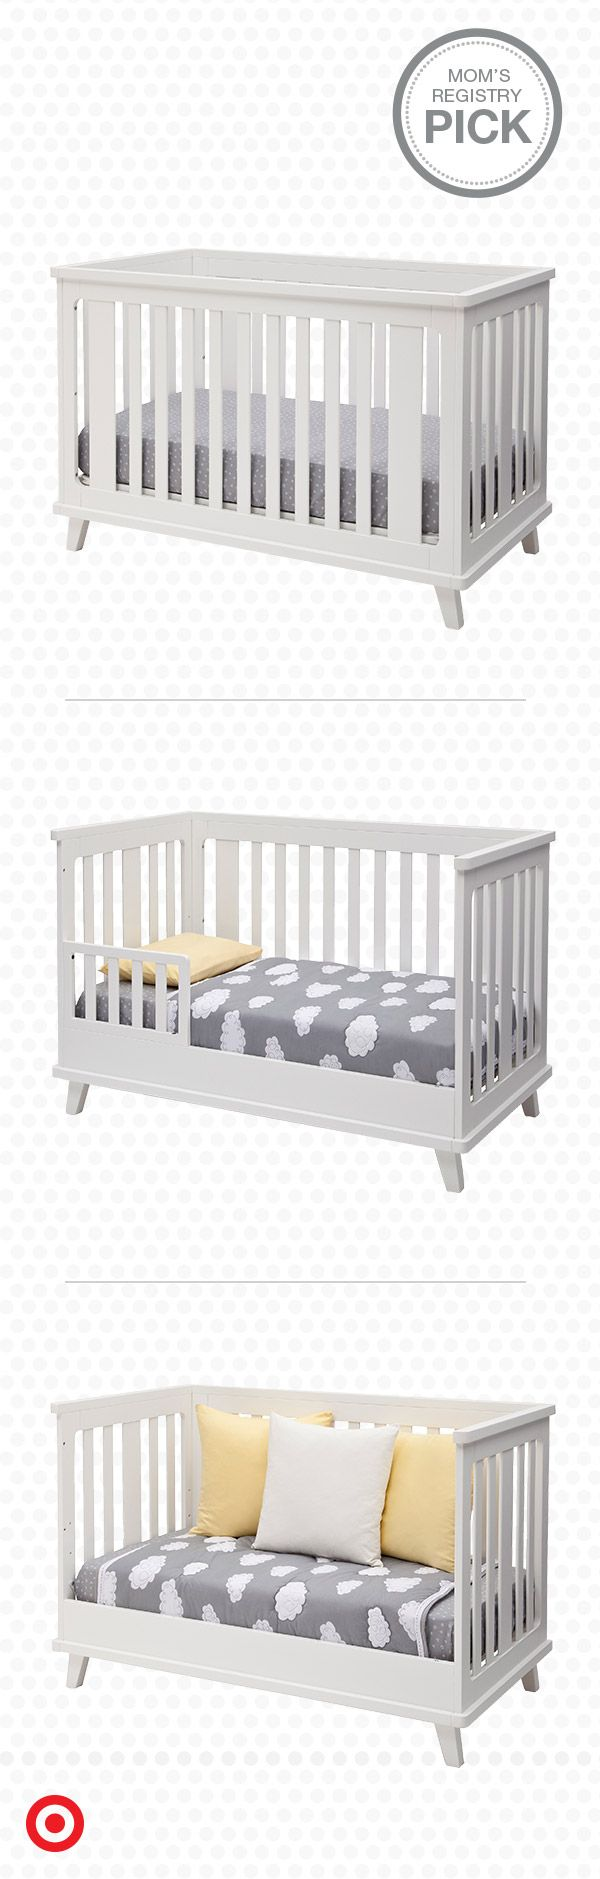 Charming Baby Cache Heritage Lifetime Convertible Crib for Best Baby Crib Choice: Baby Cache Heritage Lifetime Convertible Crib | Essentials By Baby Cache | Baby Cache Espresso Dresser